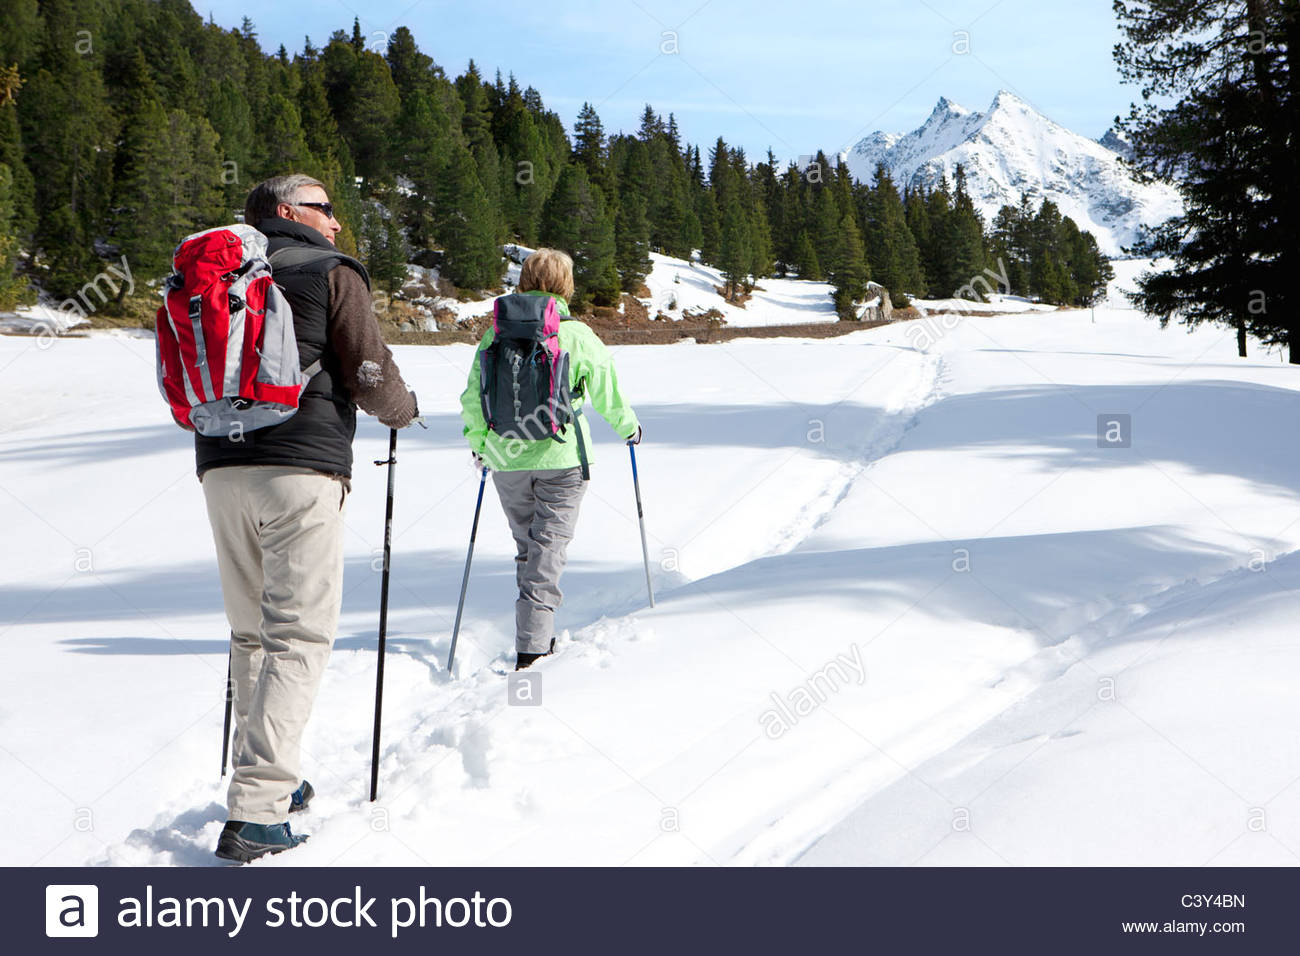 Couple hiking on trail in snow covered wilderness - Stock Image